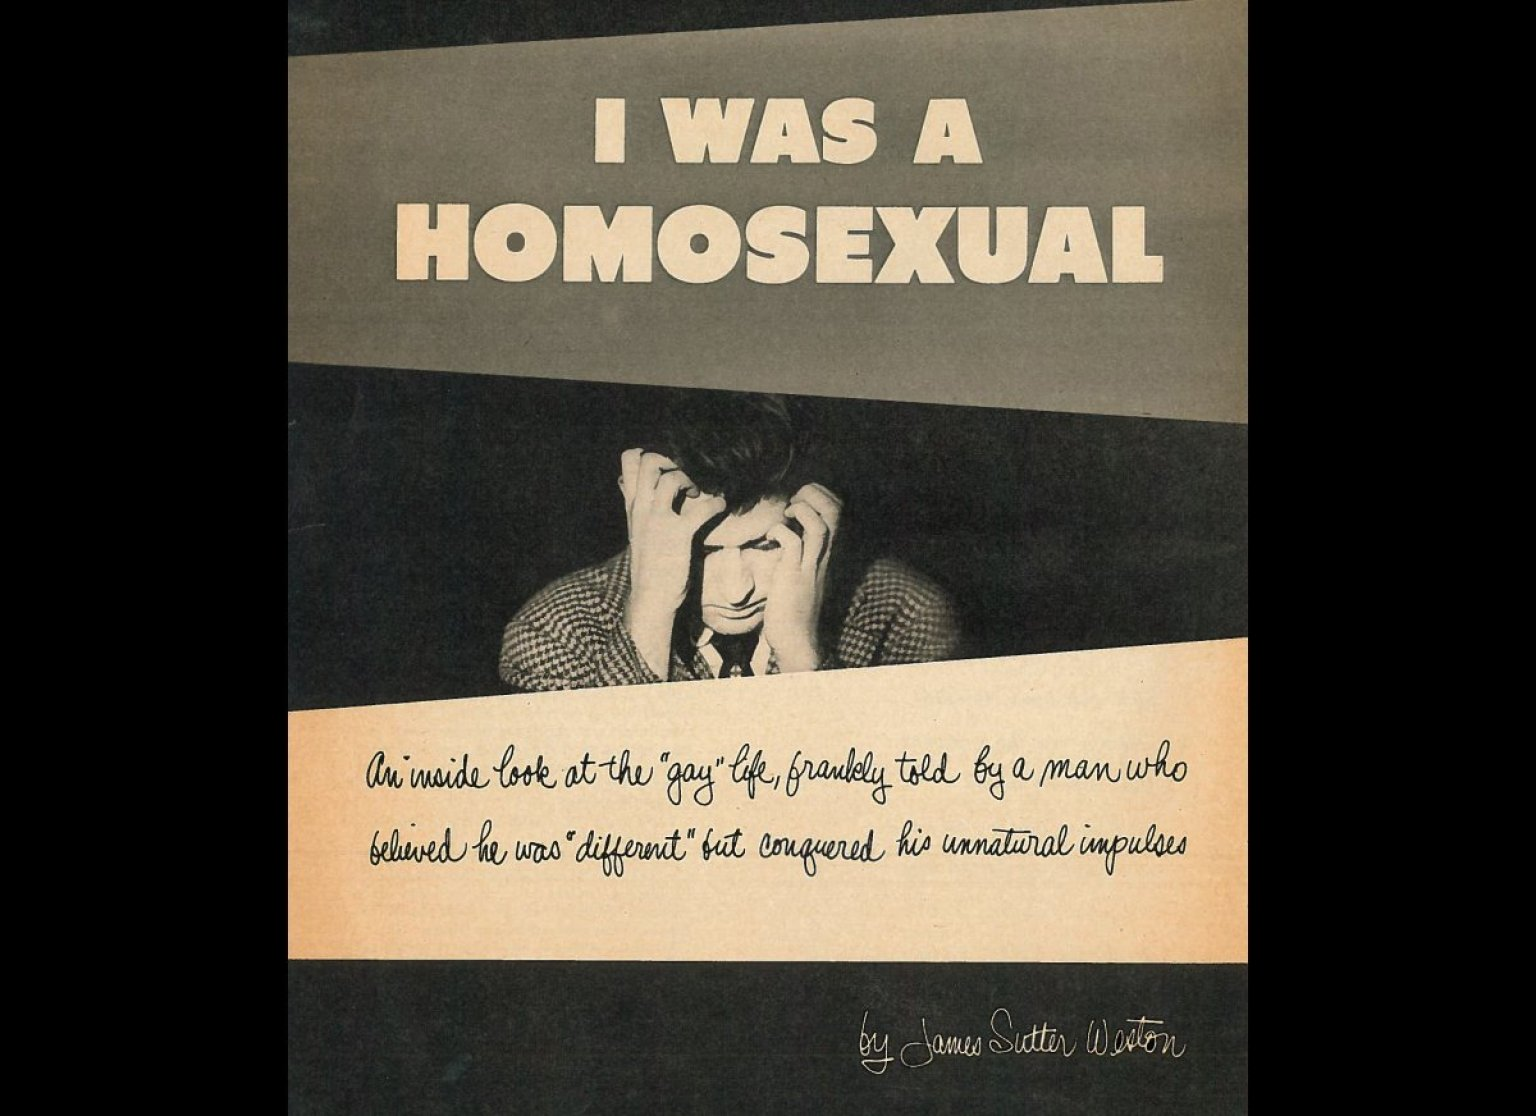 Shock the Gay Away: Secrets of Early Gay Aversion Therapy Revealed (PHOTOS) | HuffPost